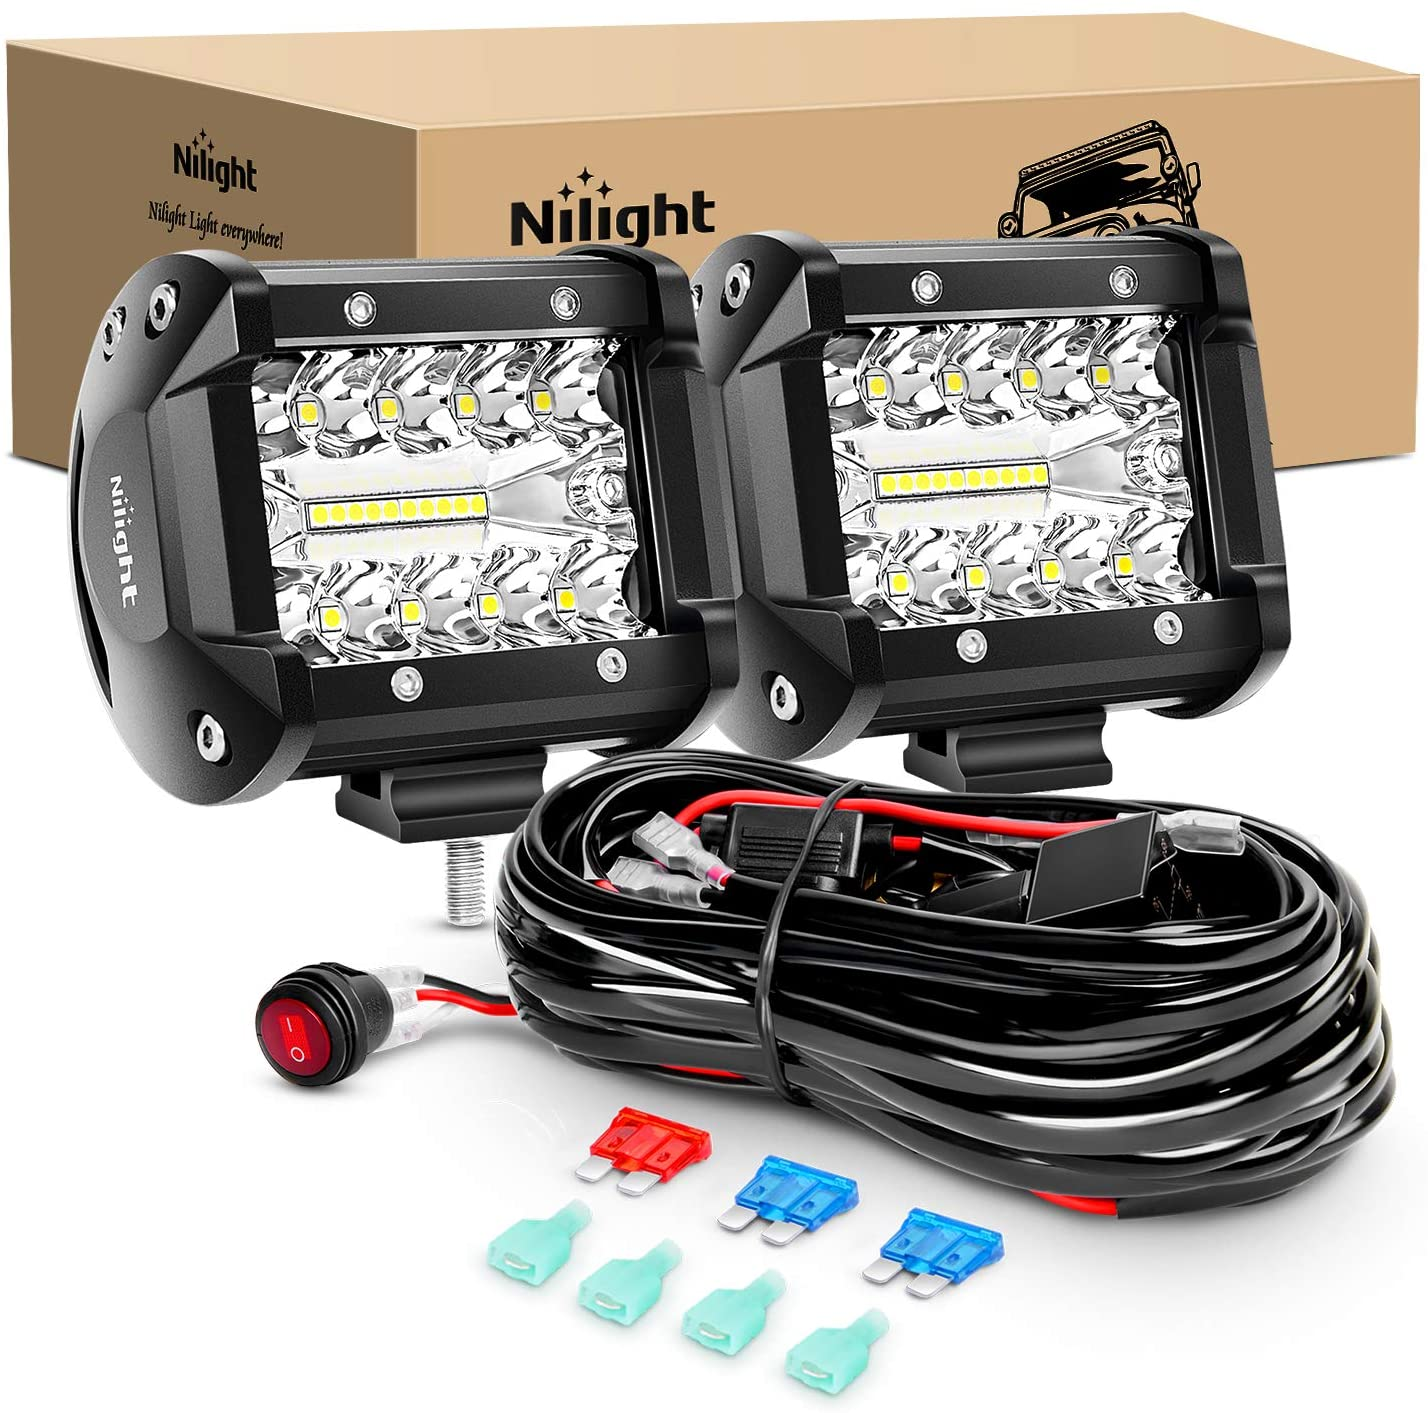 Nilight LED Light Bar 2PCS 60W 4 Inch Flood Spot Combo LED Work Light Pods Triple Row Work Driving Lamp with 12 ft Wiring Harness kit - 2 Leads,2 Year Warranty